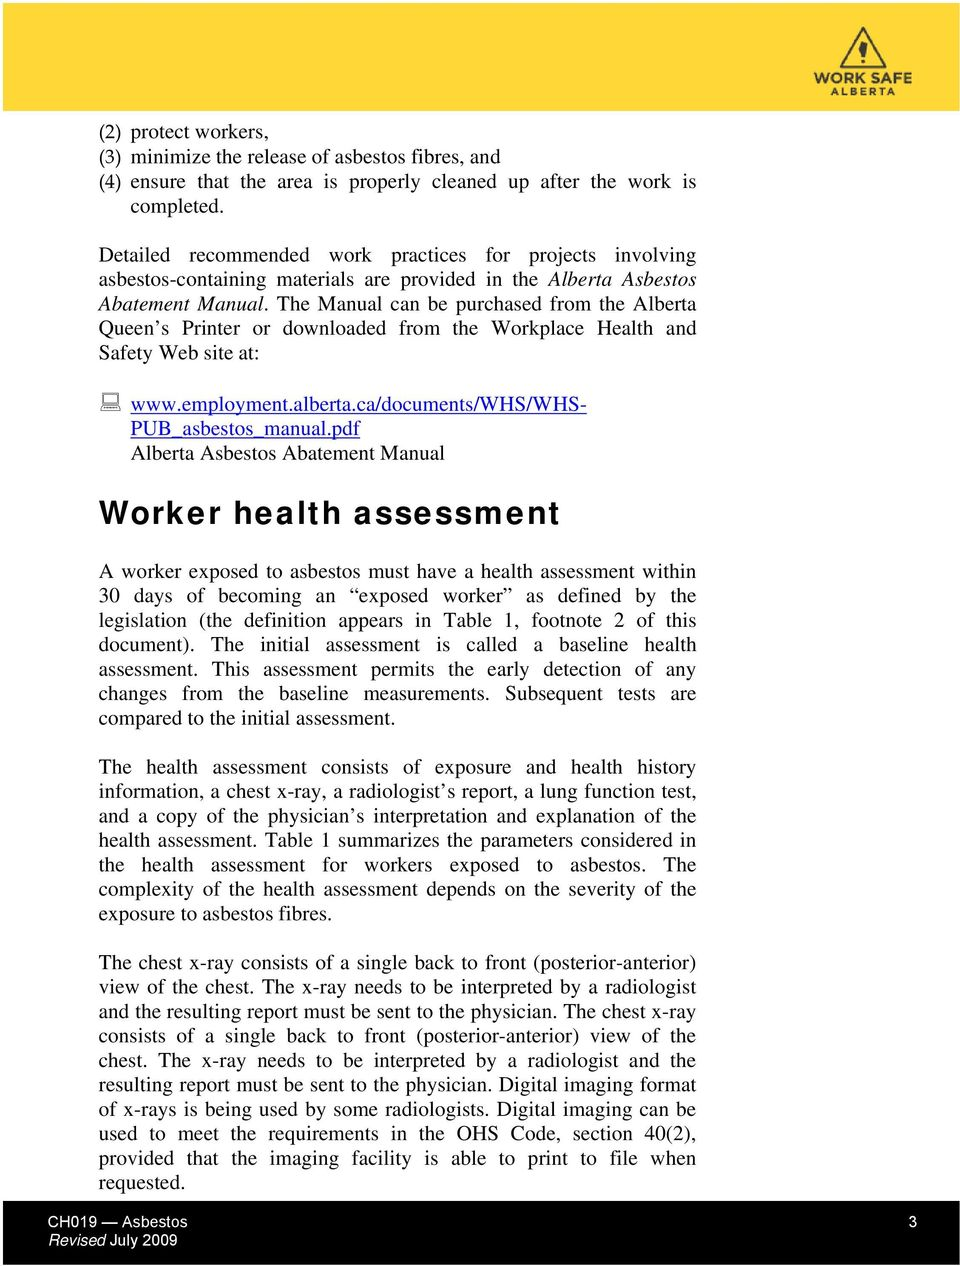 The Manual can be purchased from the Alberta Queen s Printer or downloaded from the Workplace Health and Safety Web site at: www.employment.alberta.ca/documents/whs/whs- PUB_asbestos_manual.